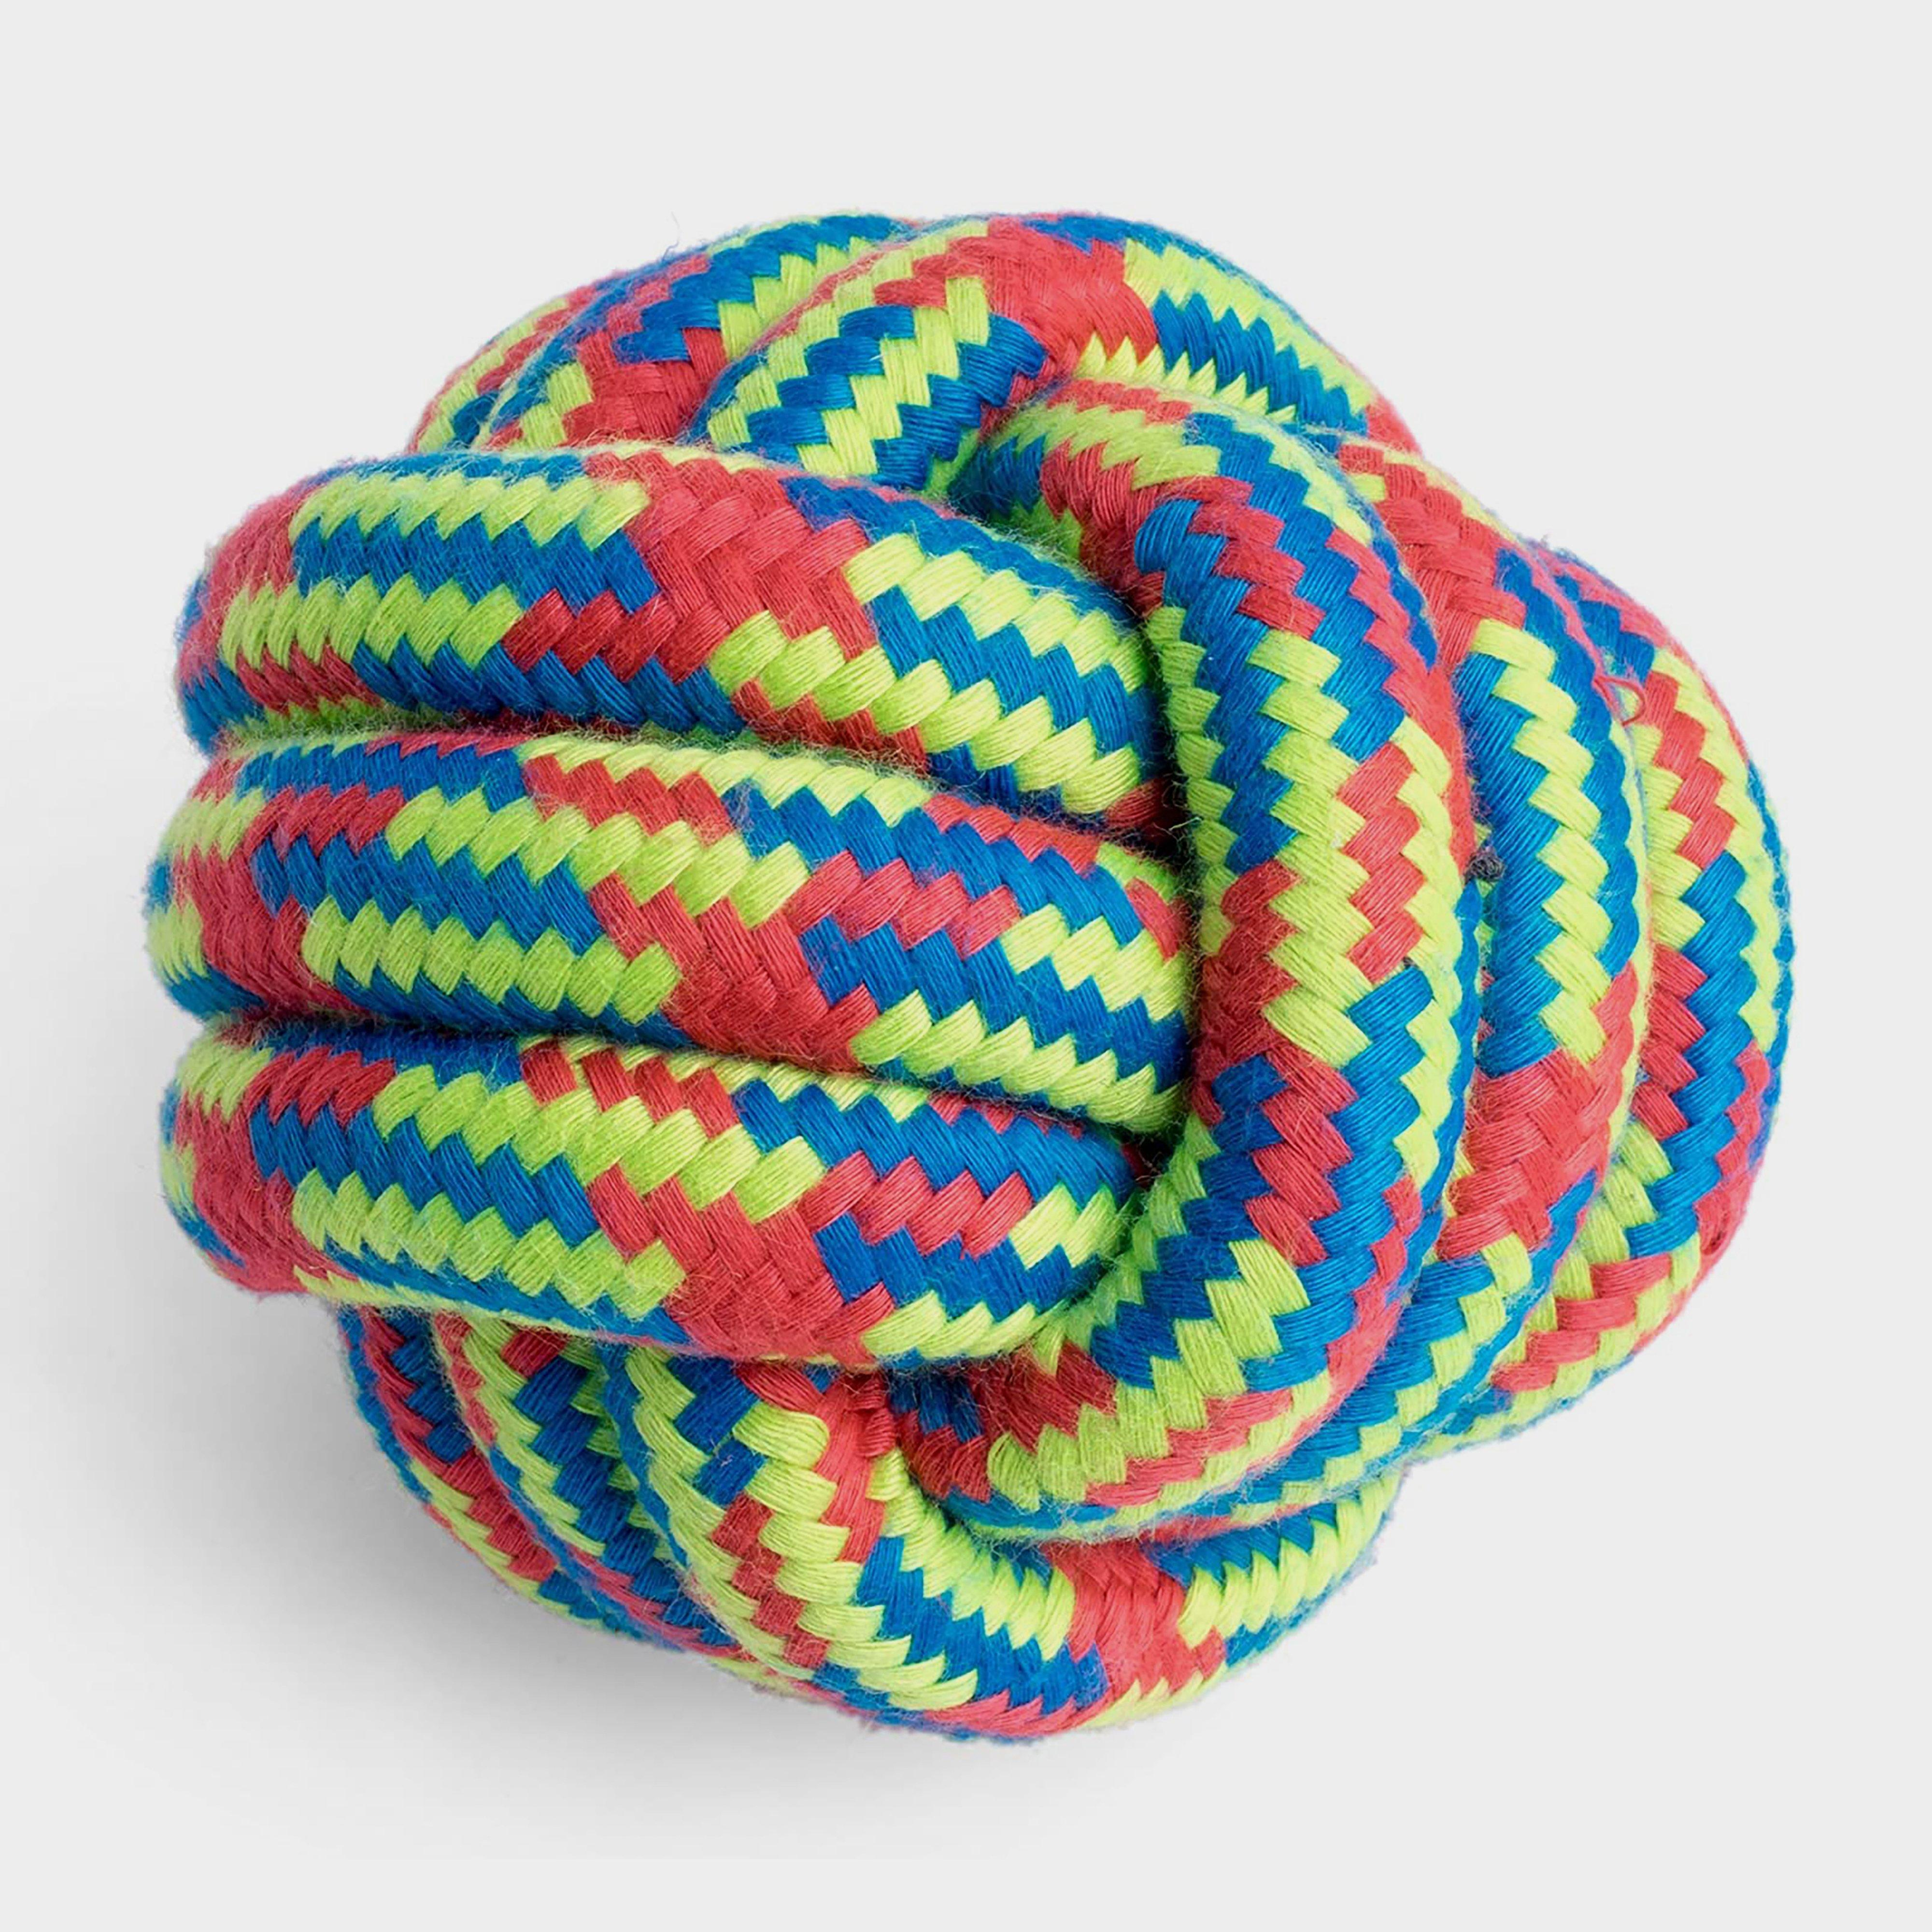 Image of Petface Toyz Woven Rope - Assorted/Assorted, ASSORTED/ASSORTED